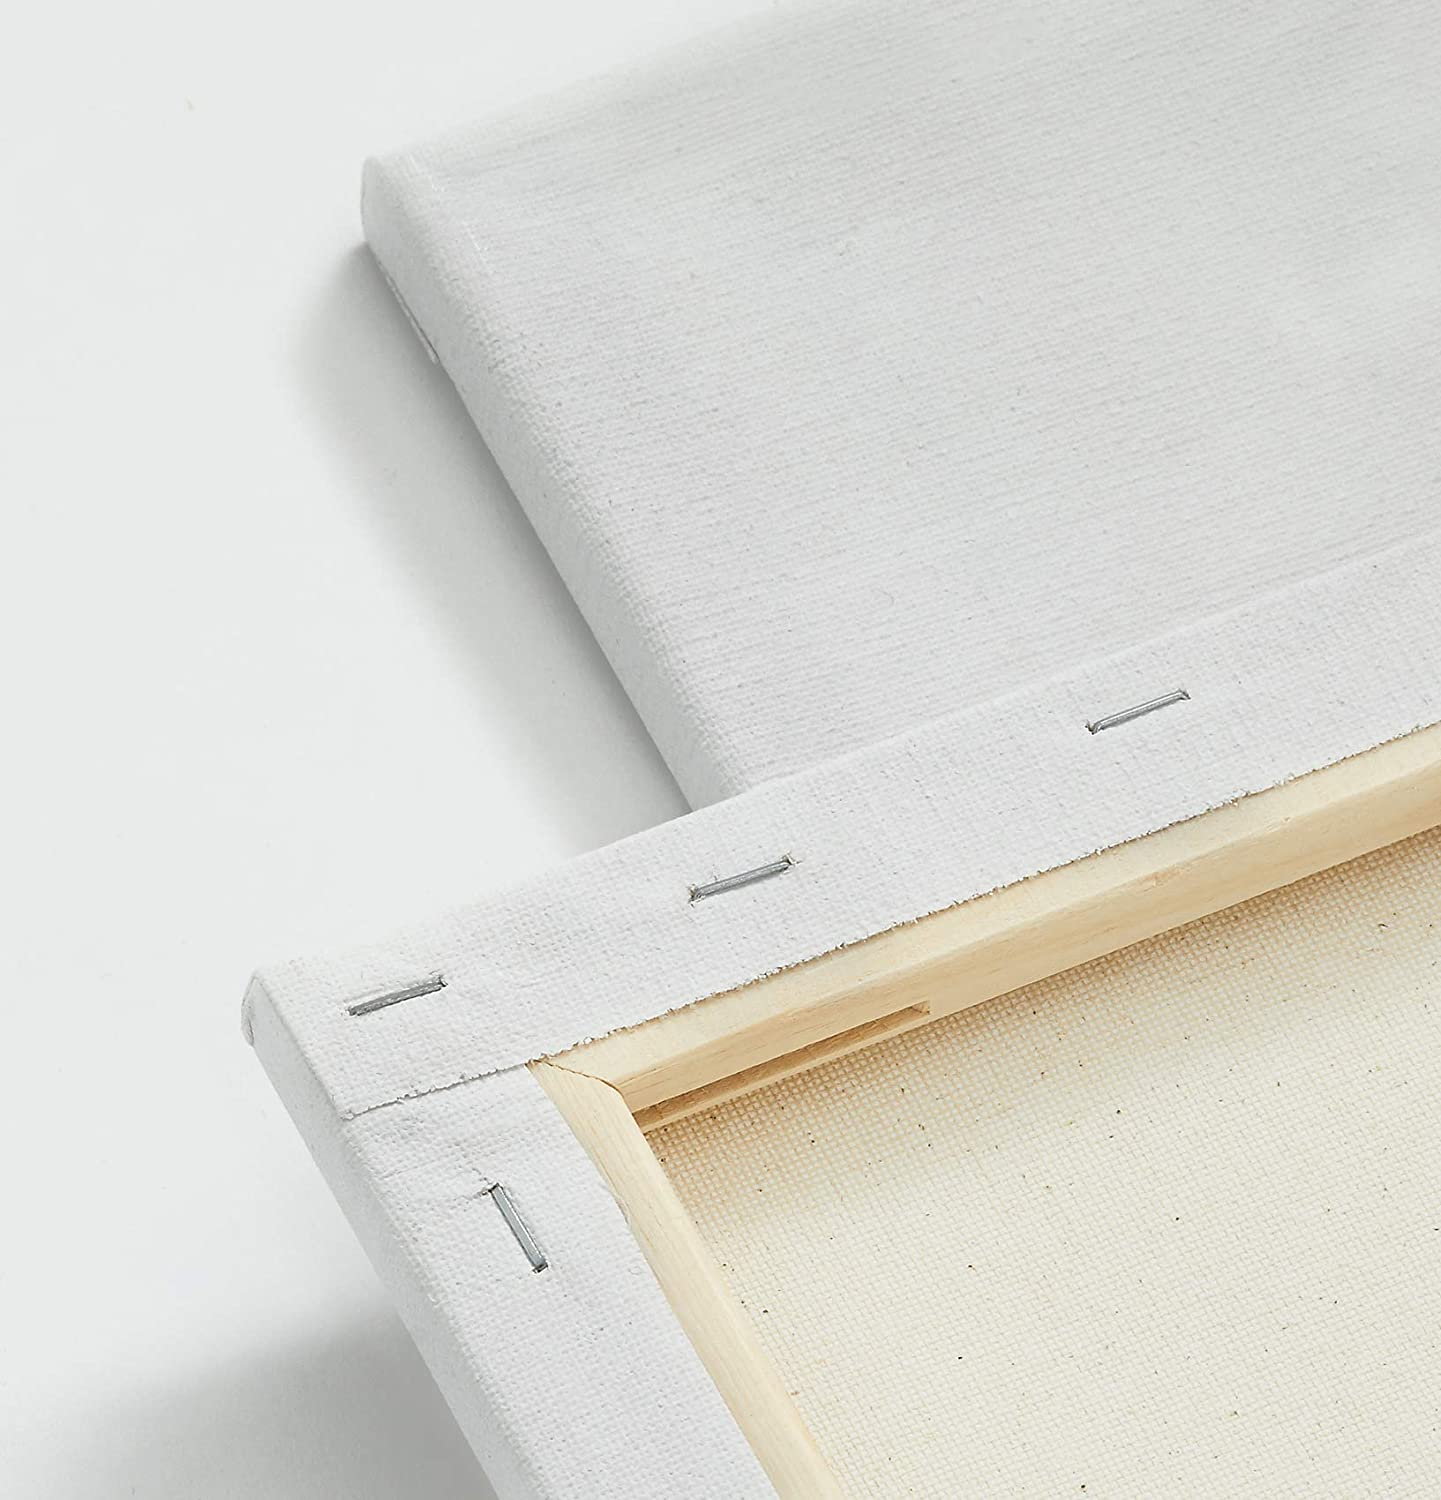 miniature 11 - Americanflat Stretched Canvas in White 100% Cotton Wooden Frames & Acid Free